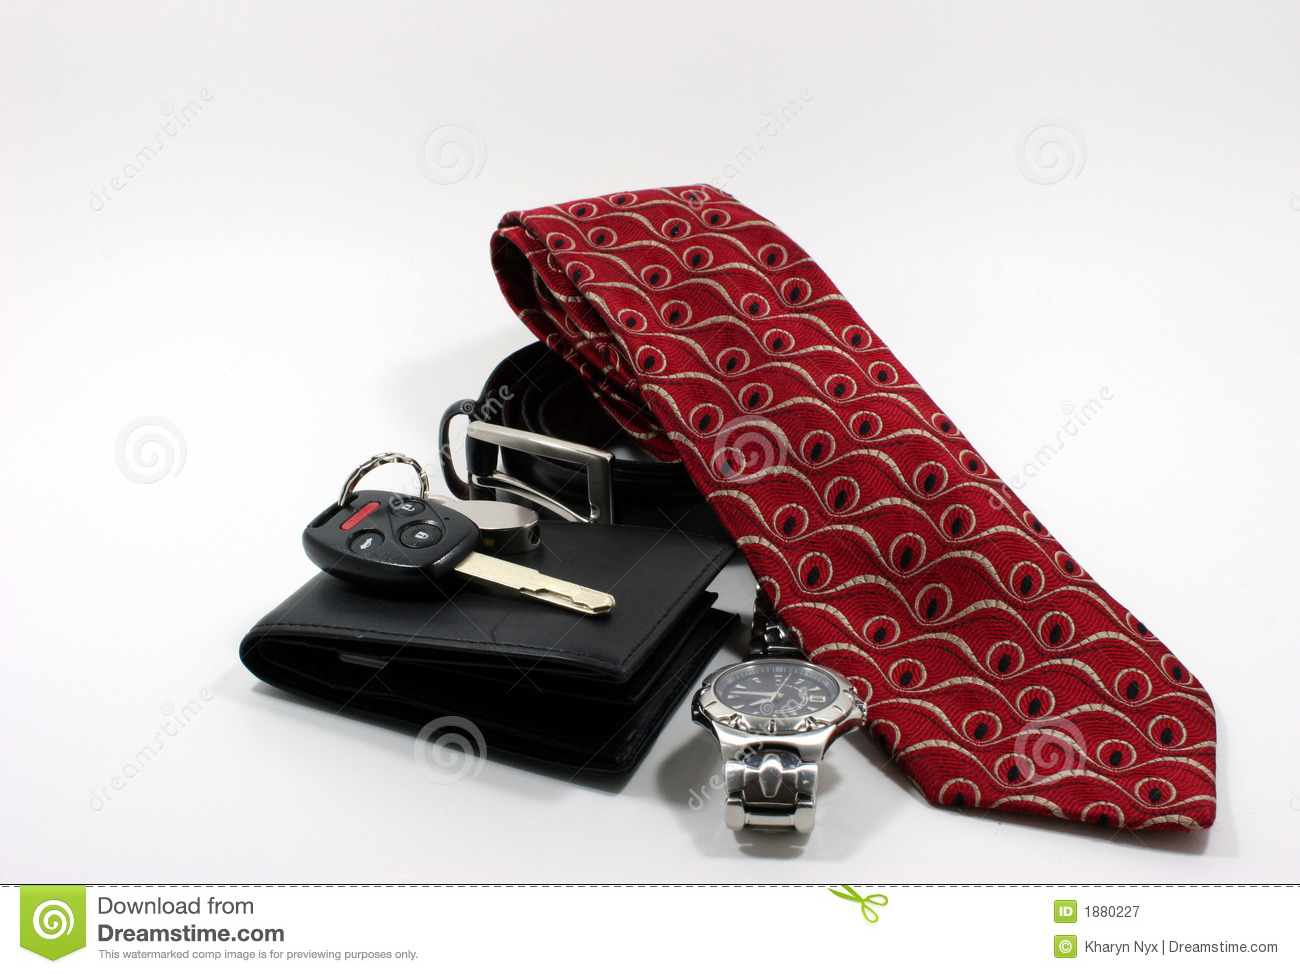 Men 39 s accessories royalty free stock photography image for Men s bathroom accessories